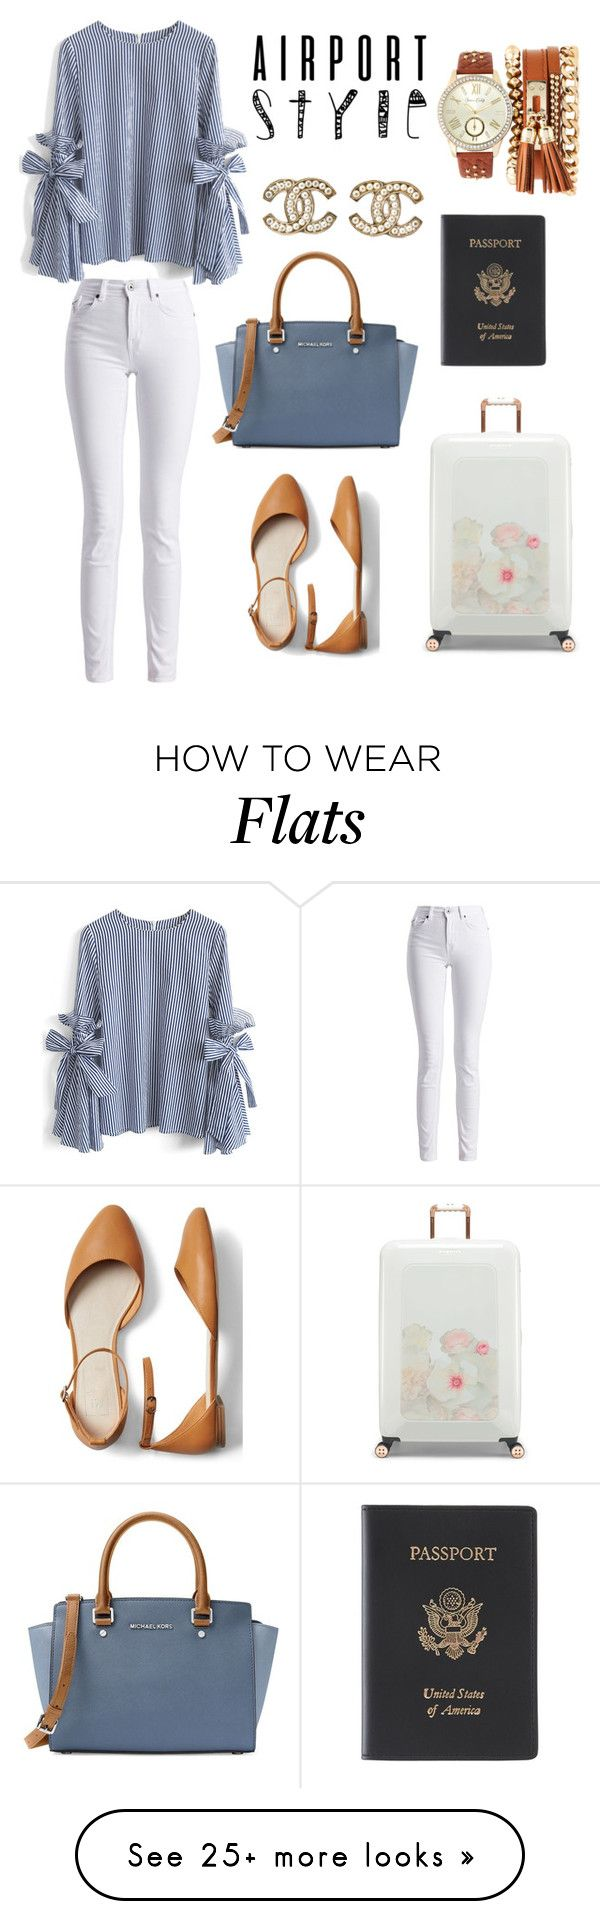 """""""Airport with style"""" by ellieacd on Polyvore featuring Jessica Carlyle, MICHAEL Michael Kors, Gap, Barbour International, Ted Baker, Royce Leather, Chicwish, Chanel and airportstyle"""